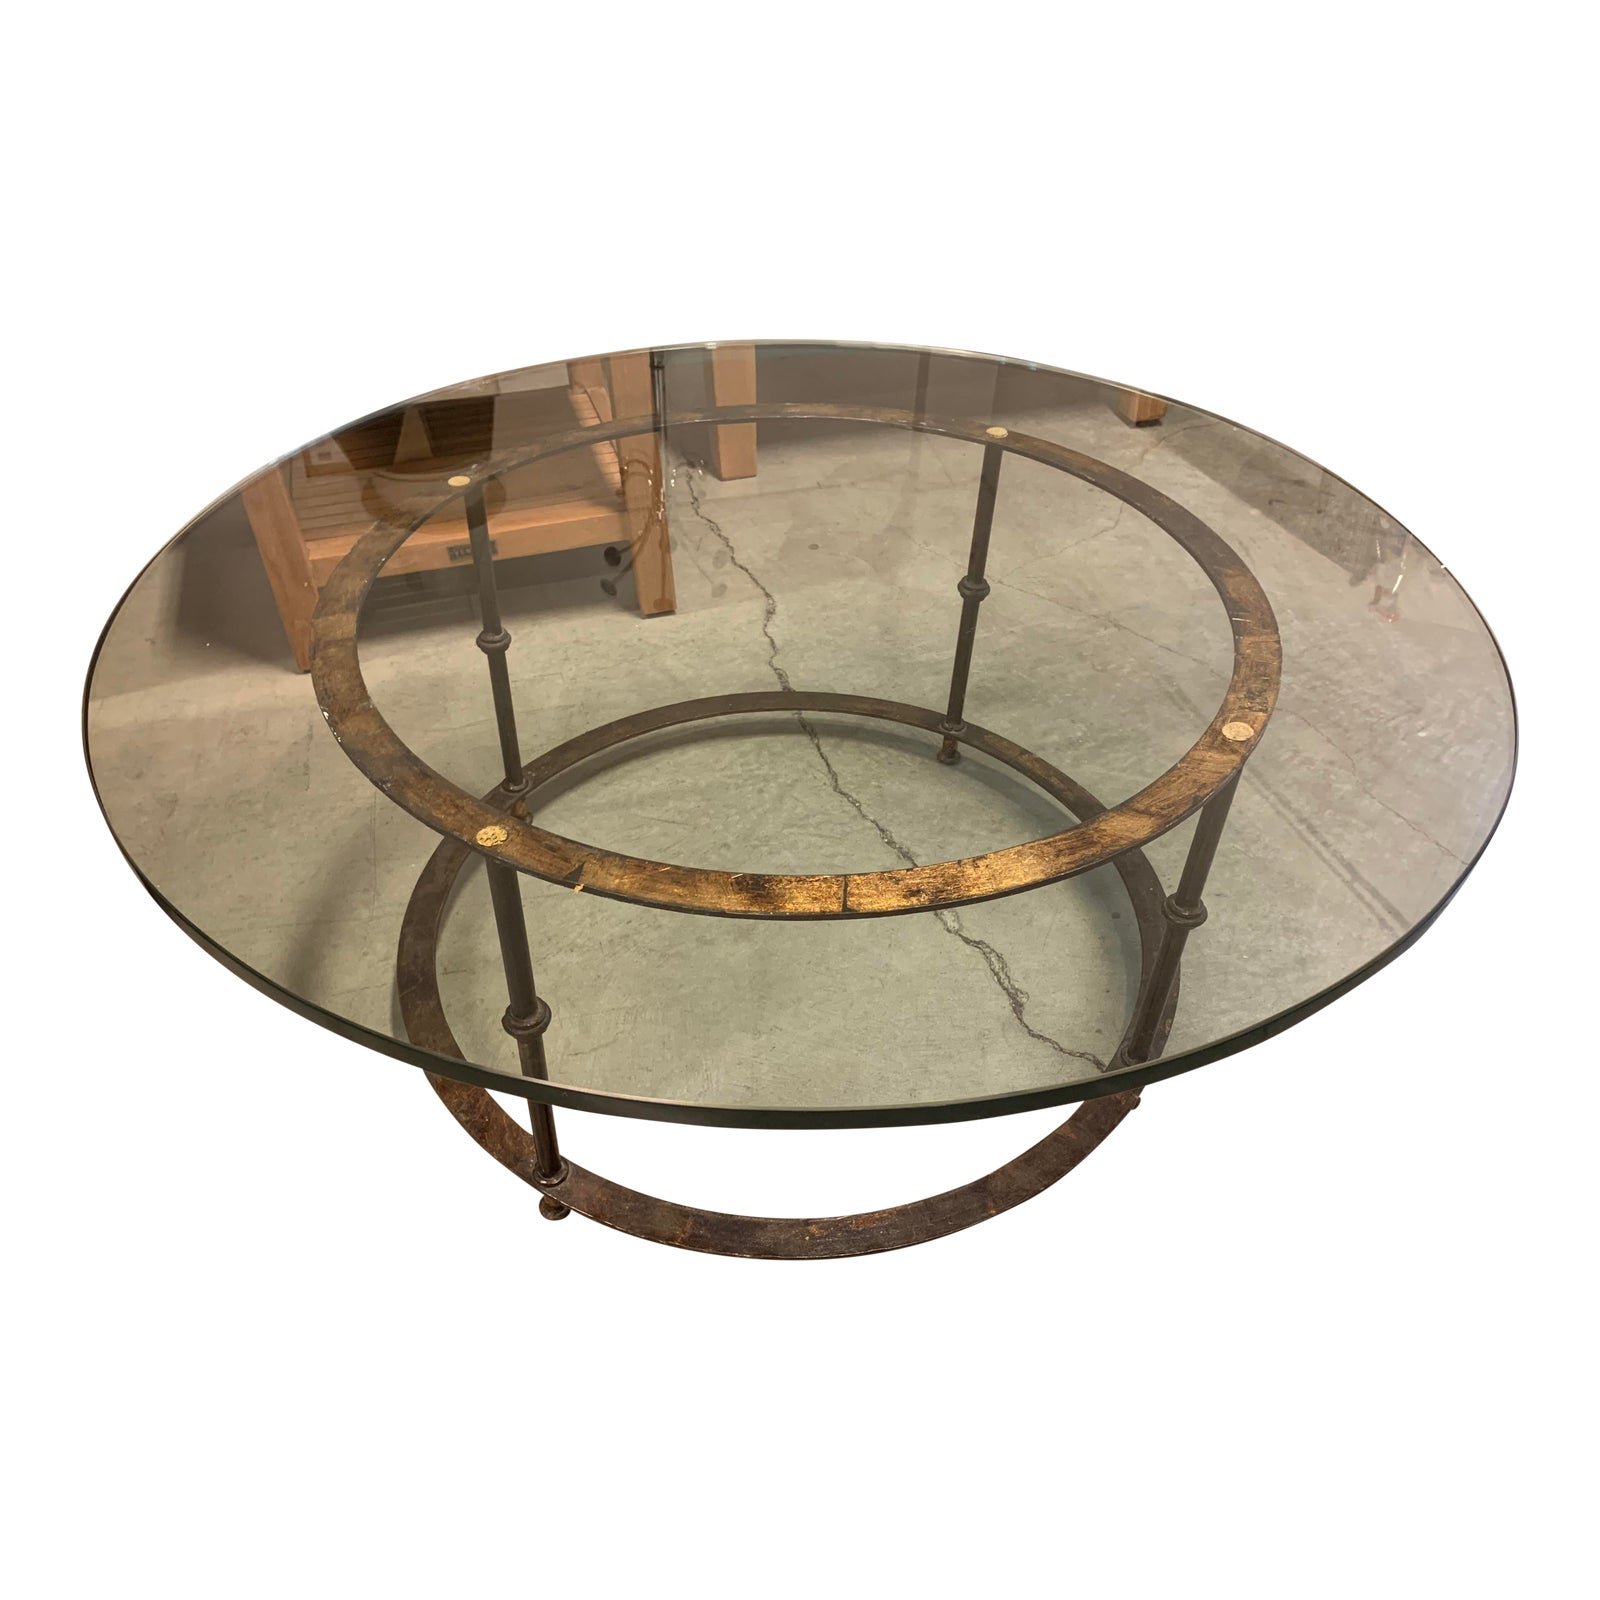 Spanish Round Glass Top Antique Brass Base Coffee Table Design Plus Gallery